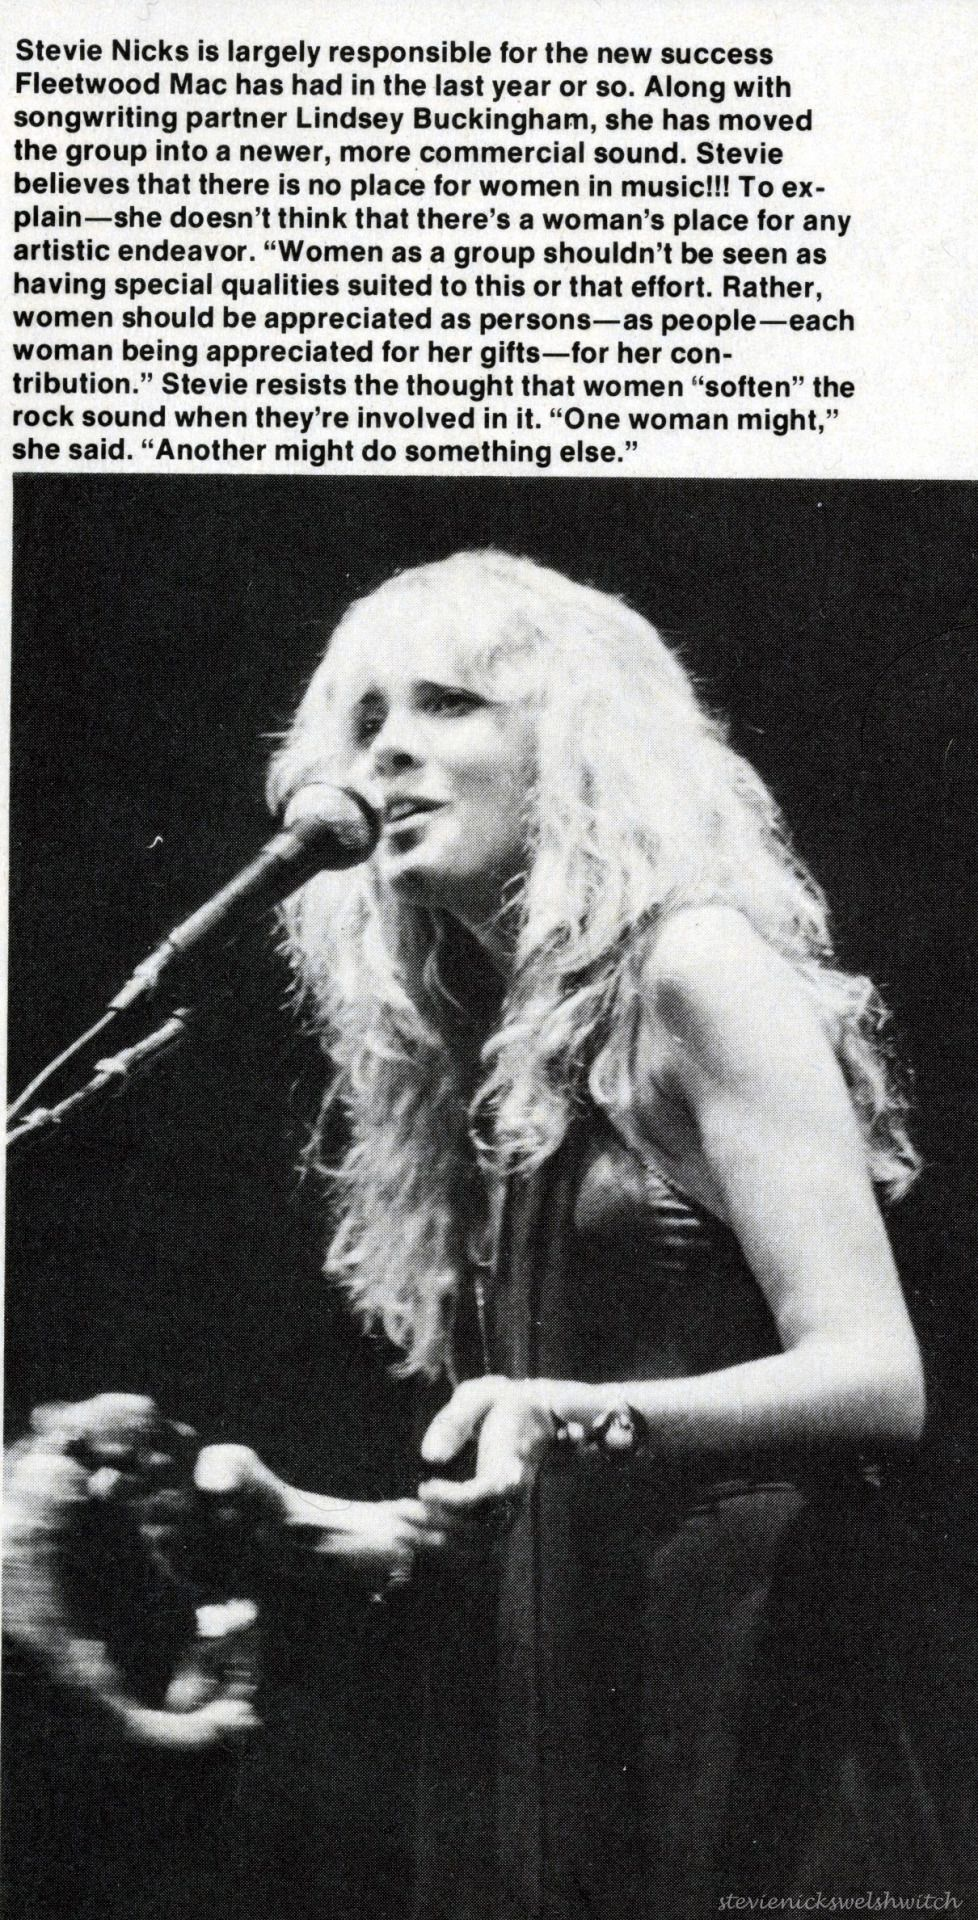 Stevie Nicks and Fleetwood Mac I DO NOT OWN, OR CLAIM